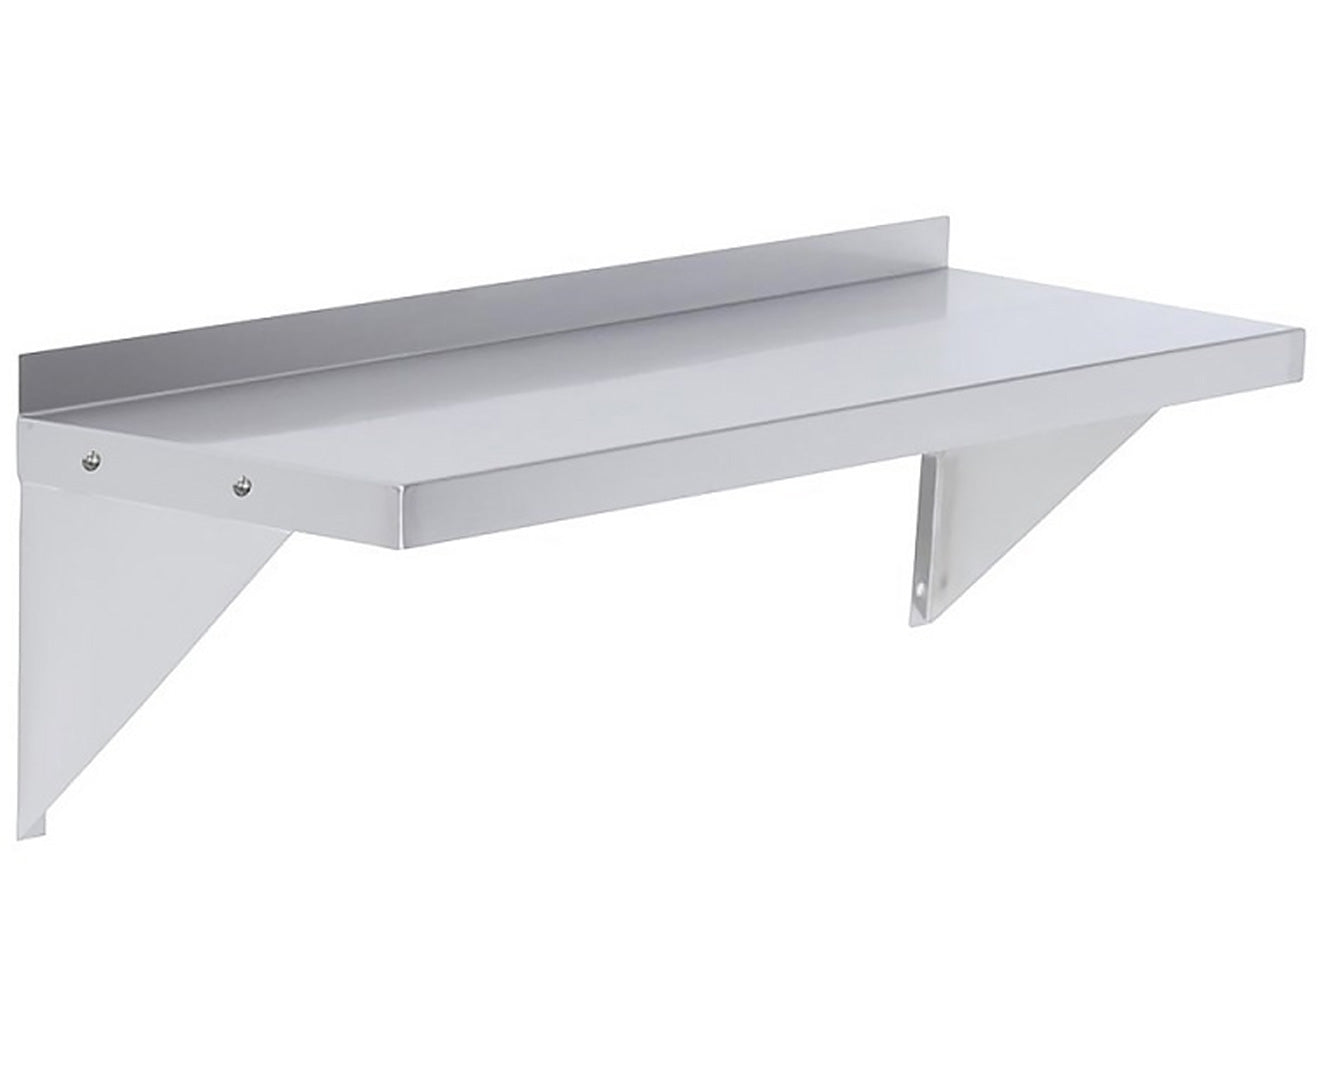 610x356mm Stainless Wall Mounted Shelf